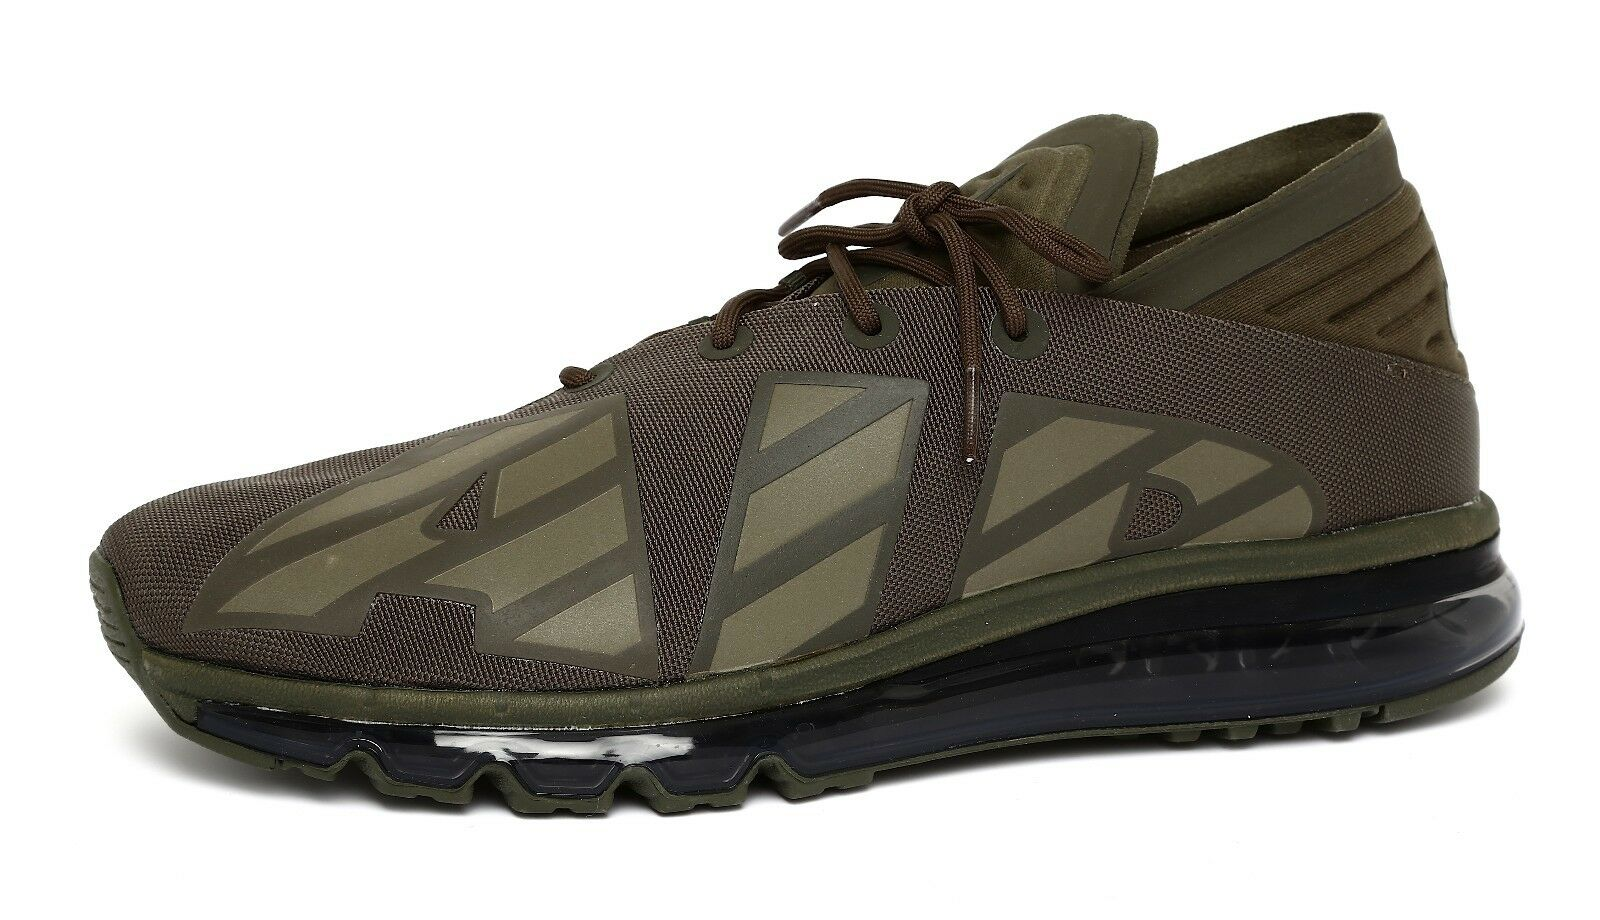 Nike Air Max Flair SE Men's Cargo Khaki Running Shoes Sz 10.5 2064 The most popular shoes for men and women